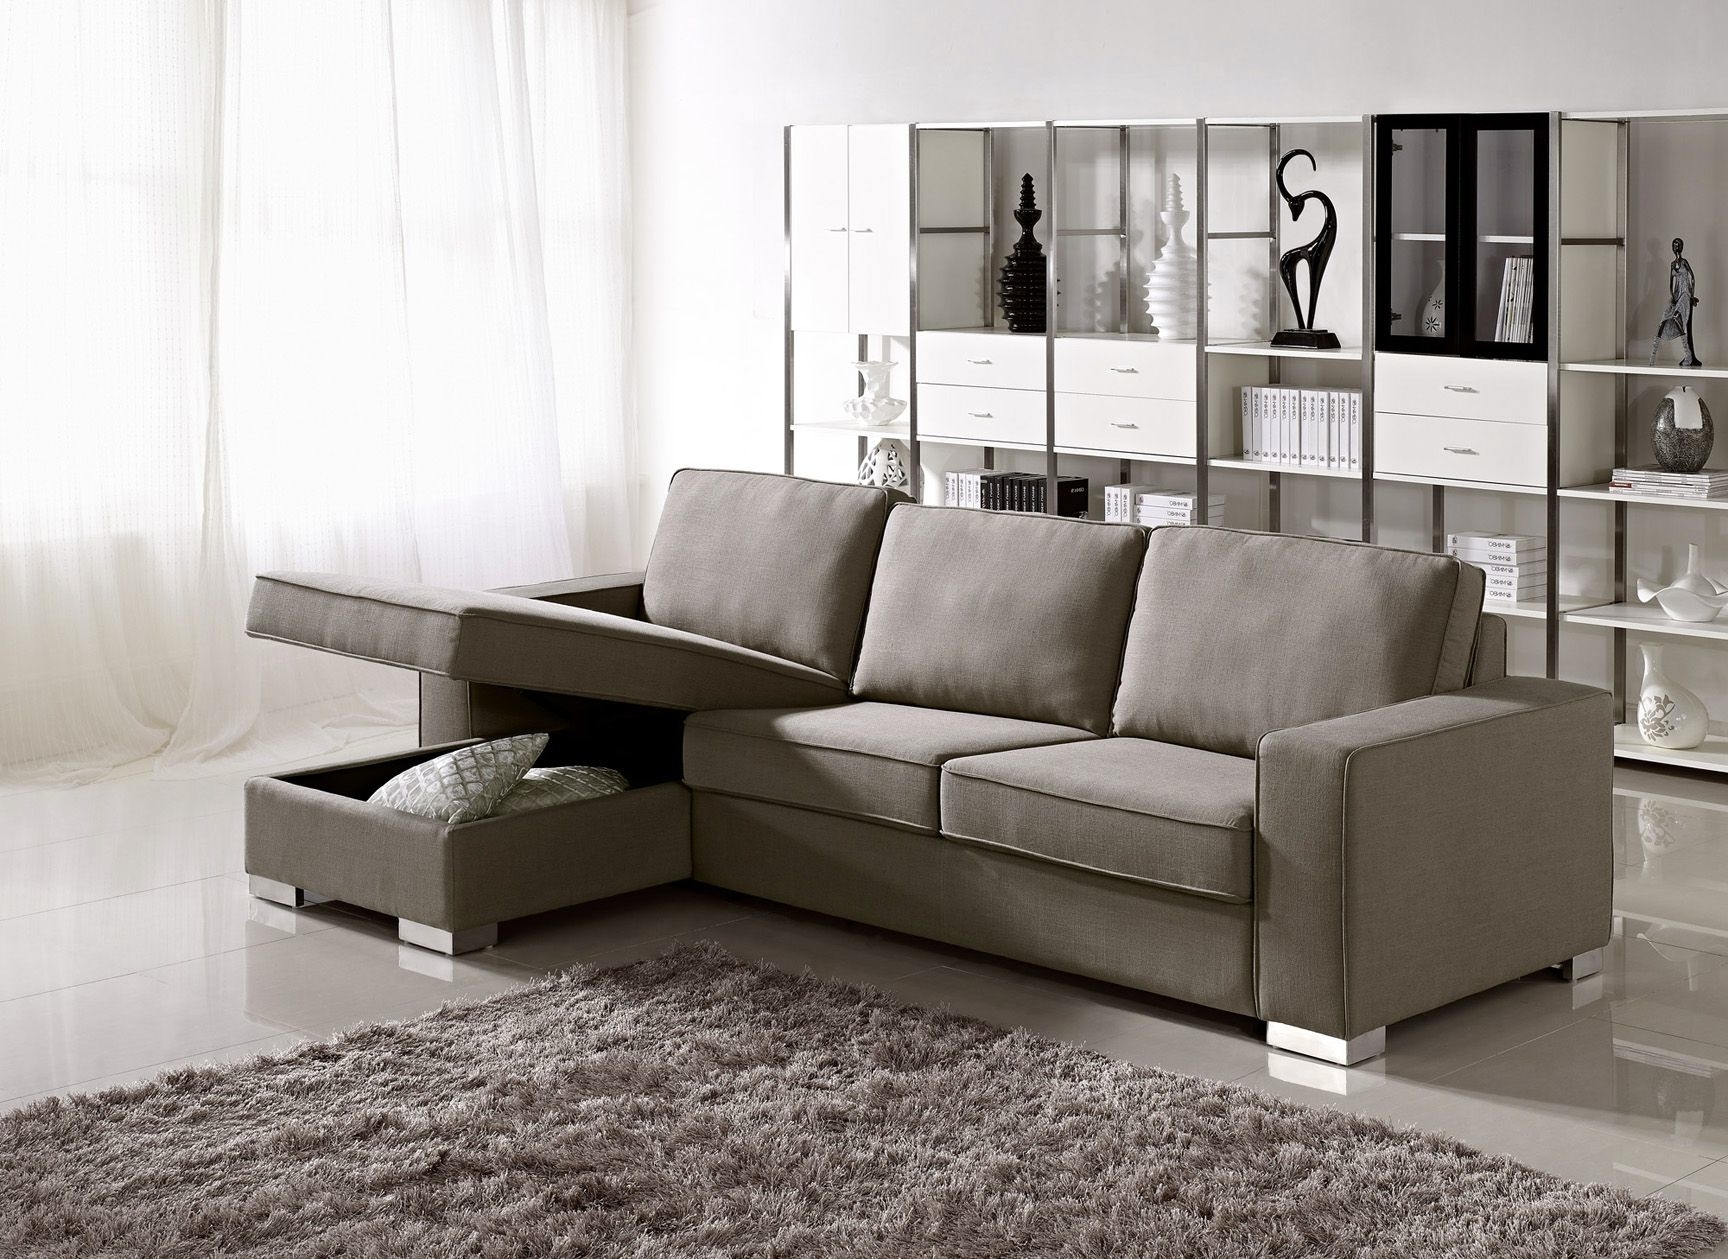 Current Amazing High Quality Sectional Sofas 52 About Remodel Sectional With High Quality Sectional Sofas (View 9 of 15)